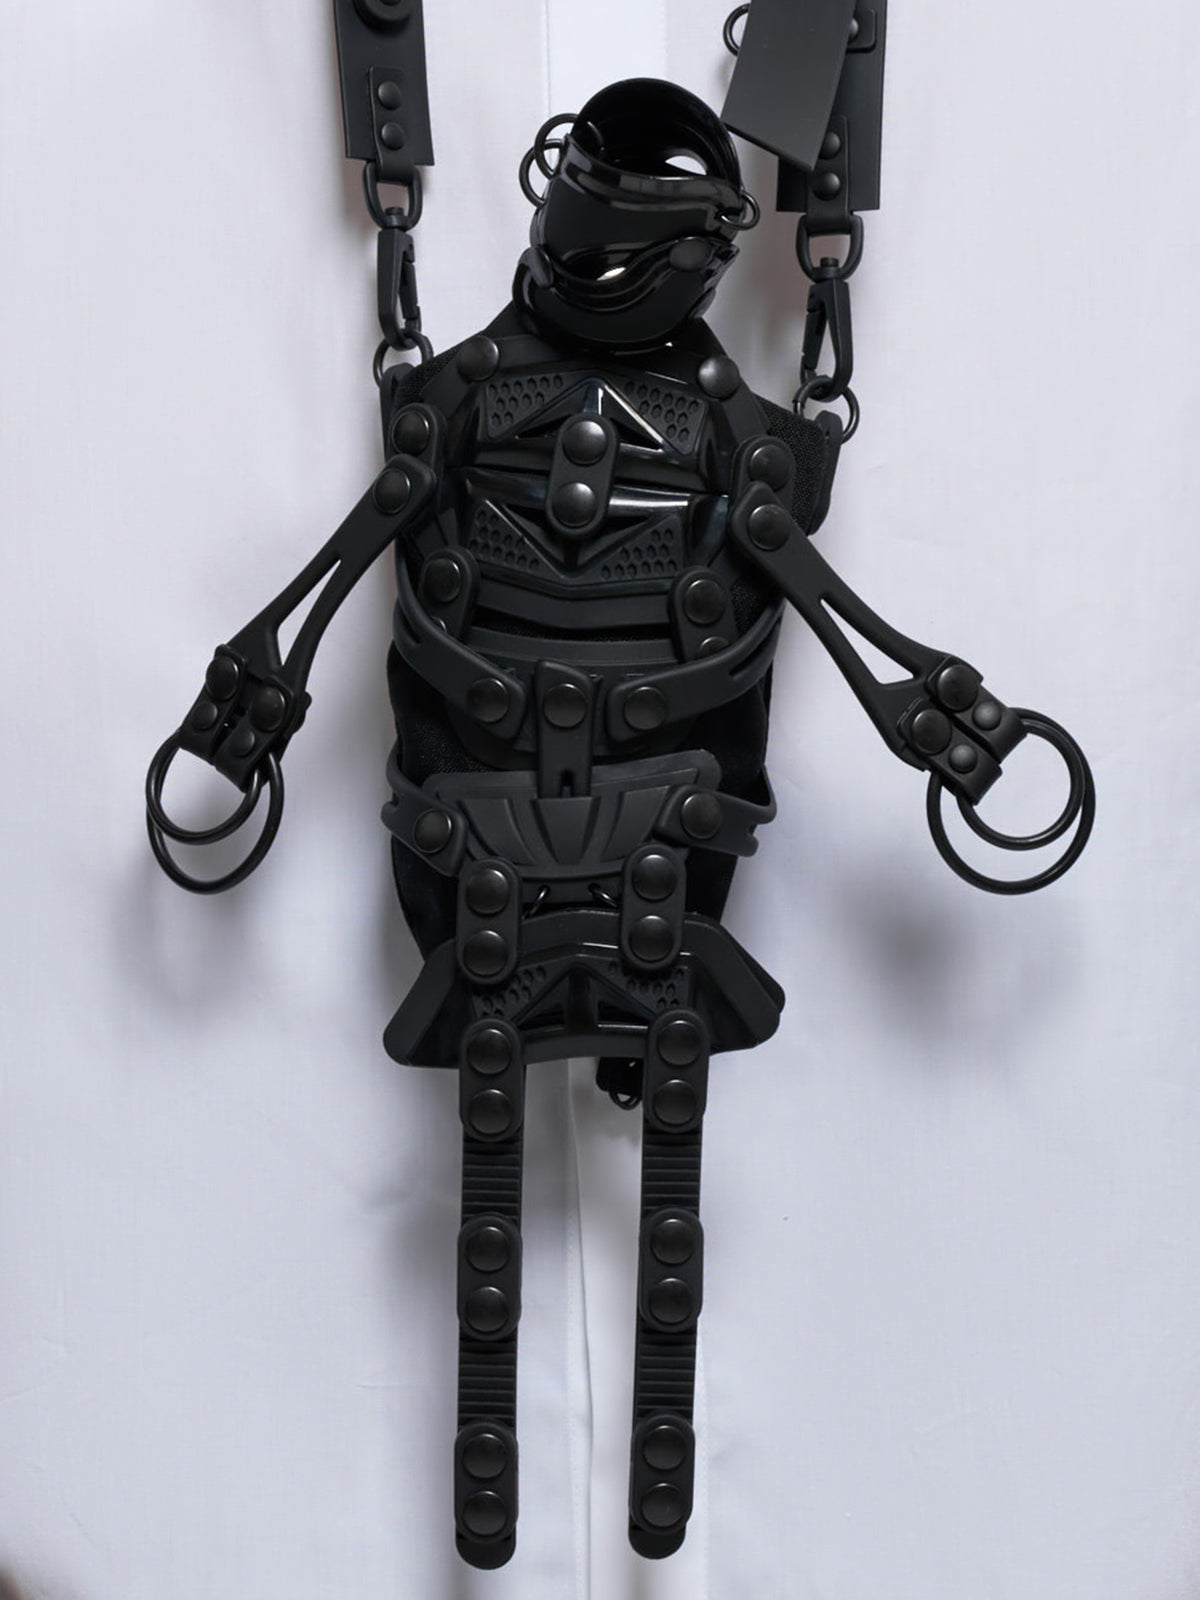 139 Robot Bag (I39-ROBOT-BLACK)